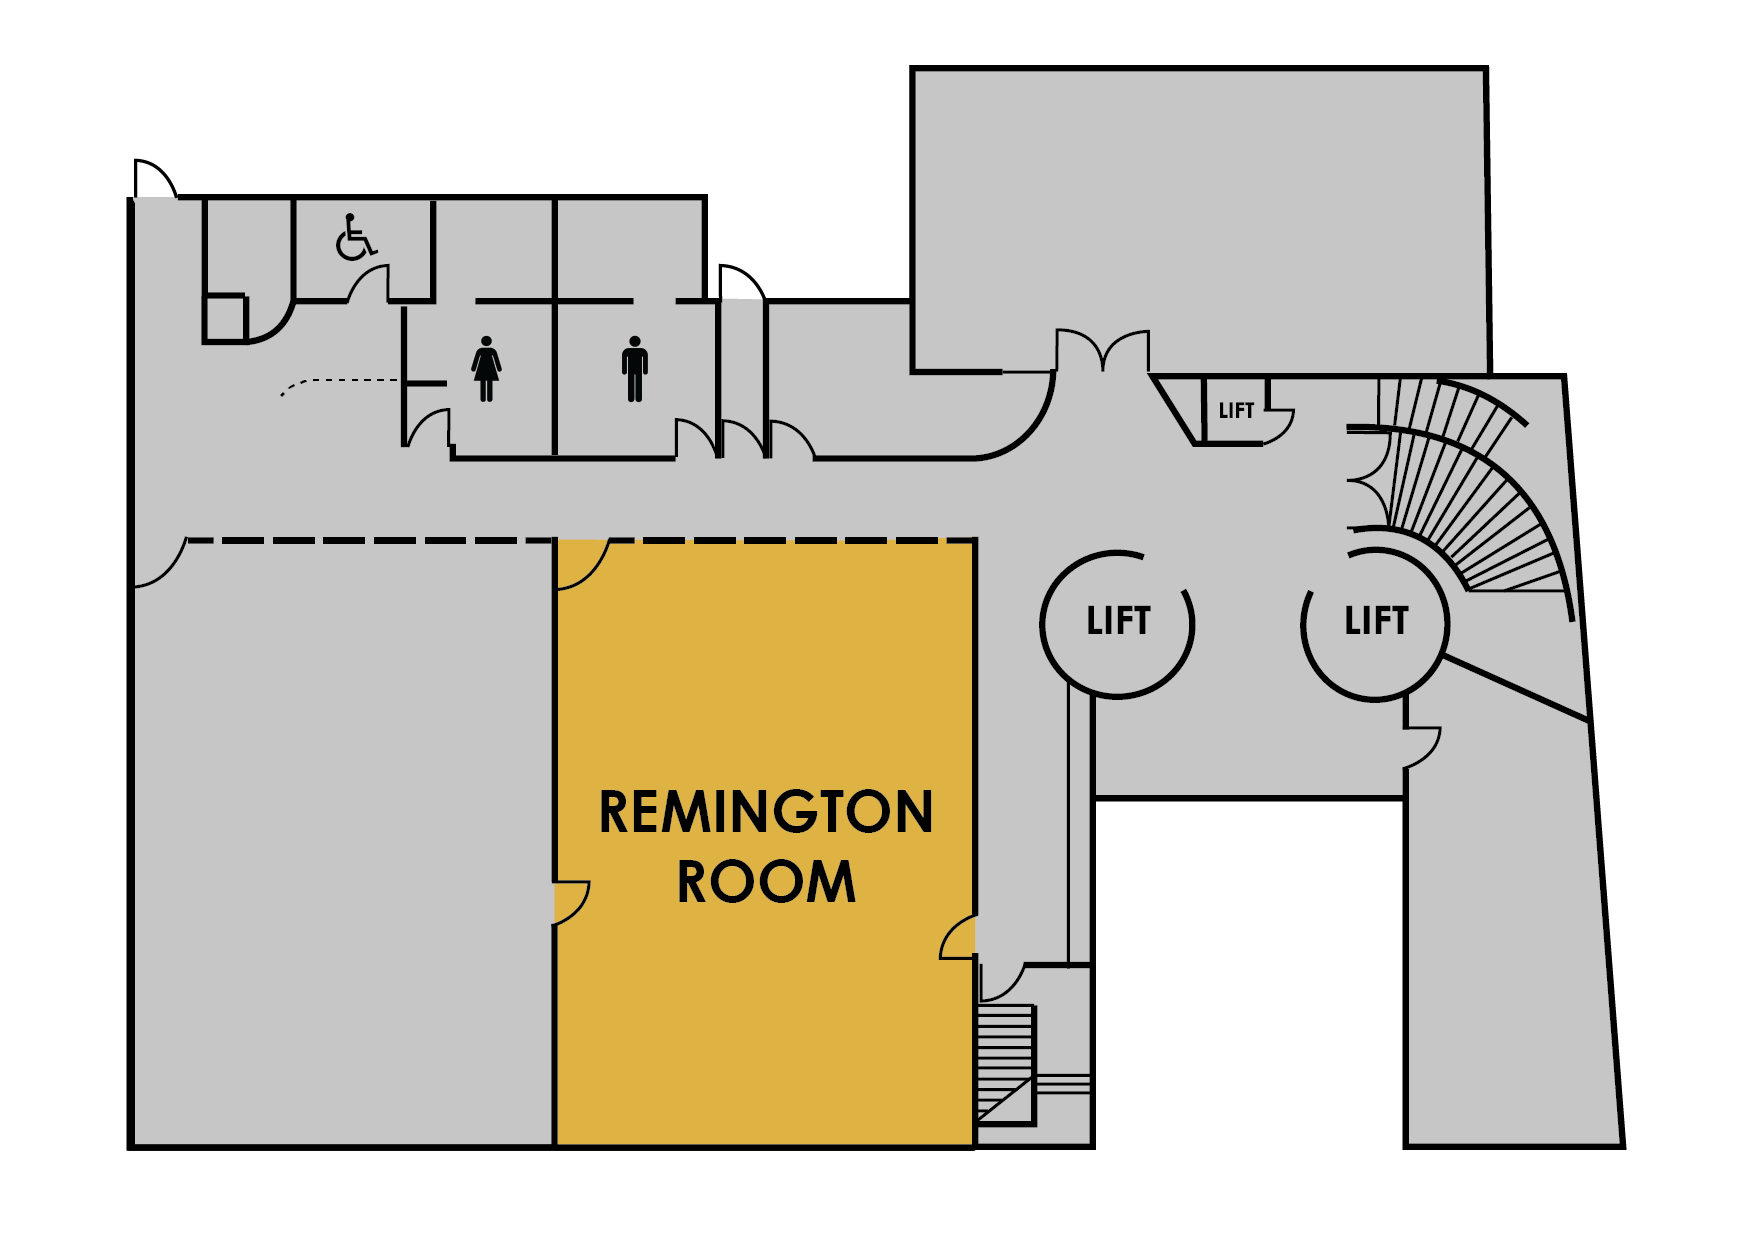 Remington map